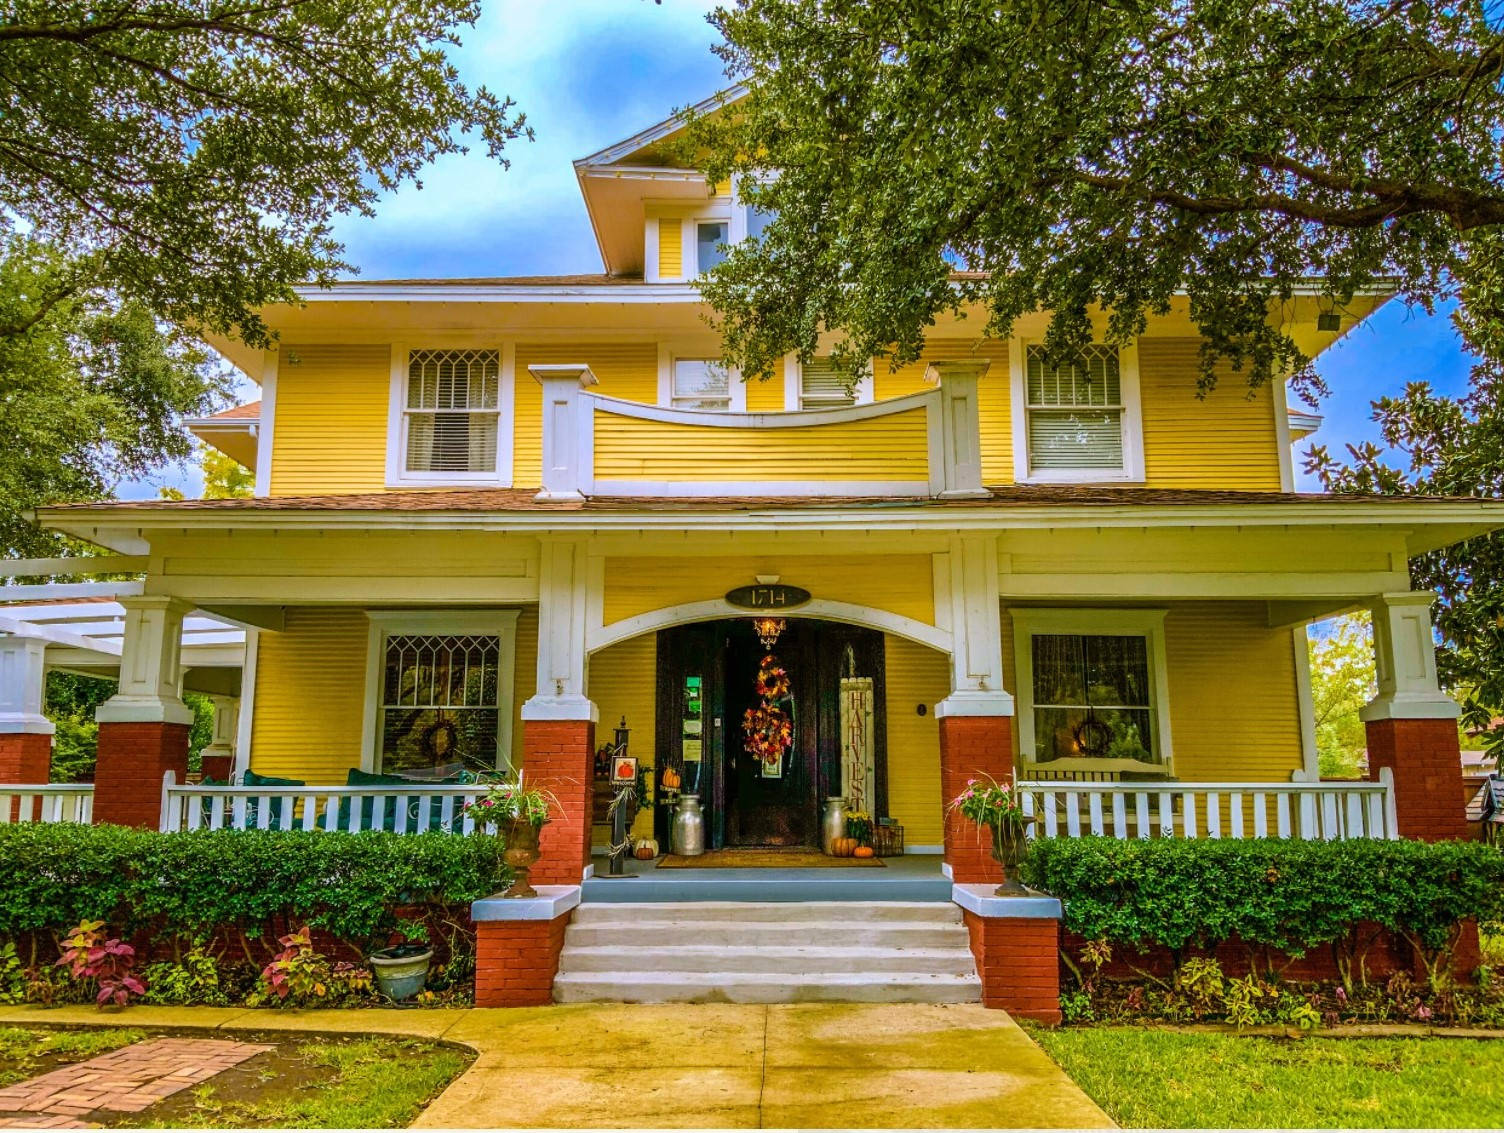 Fort Worth Bed and Breakfast